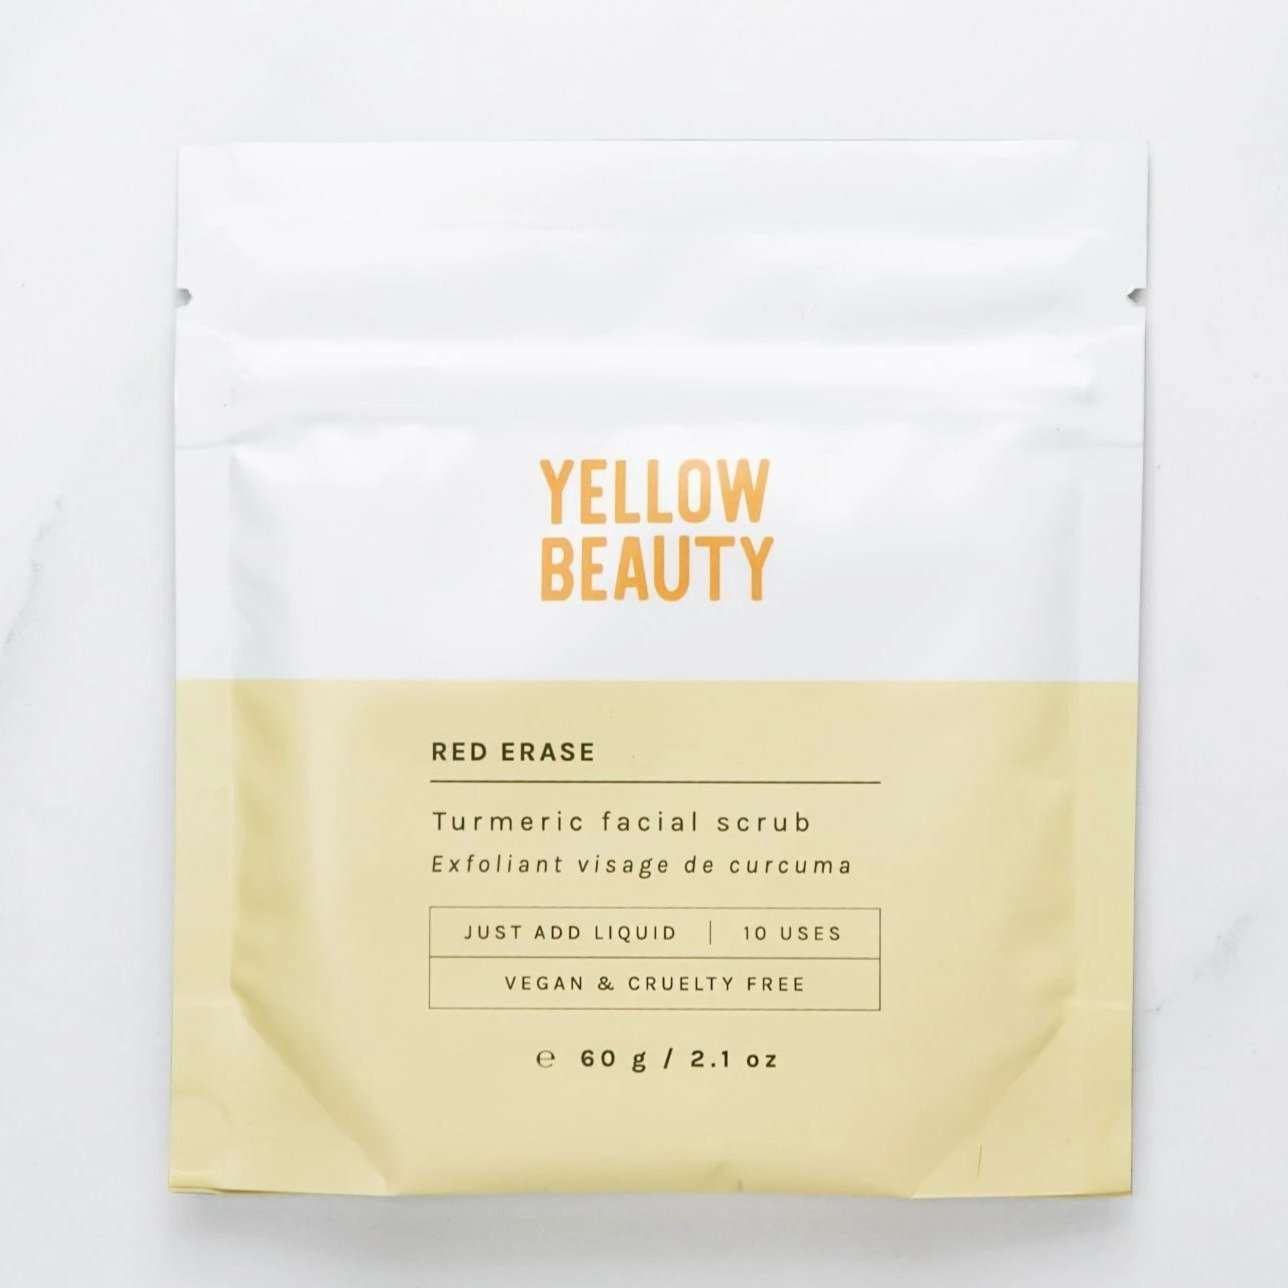 Jiyubox: Red Erase Soothing Exfoliator by Yellow Beauty